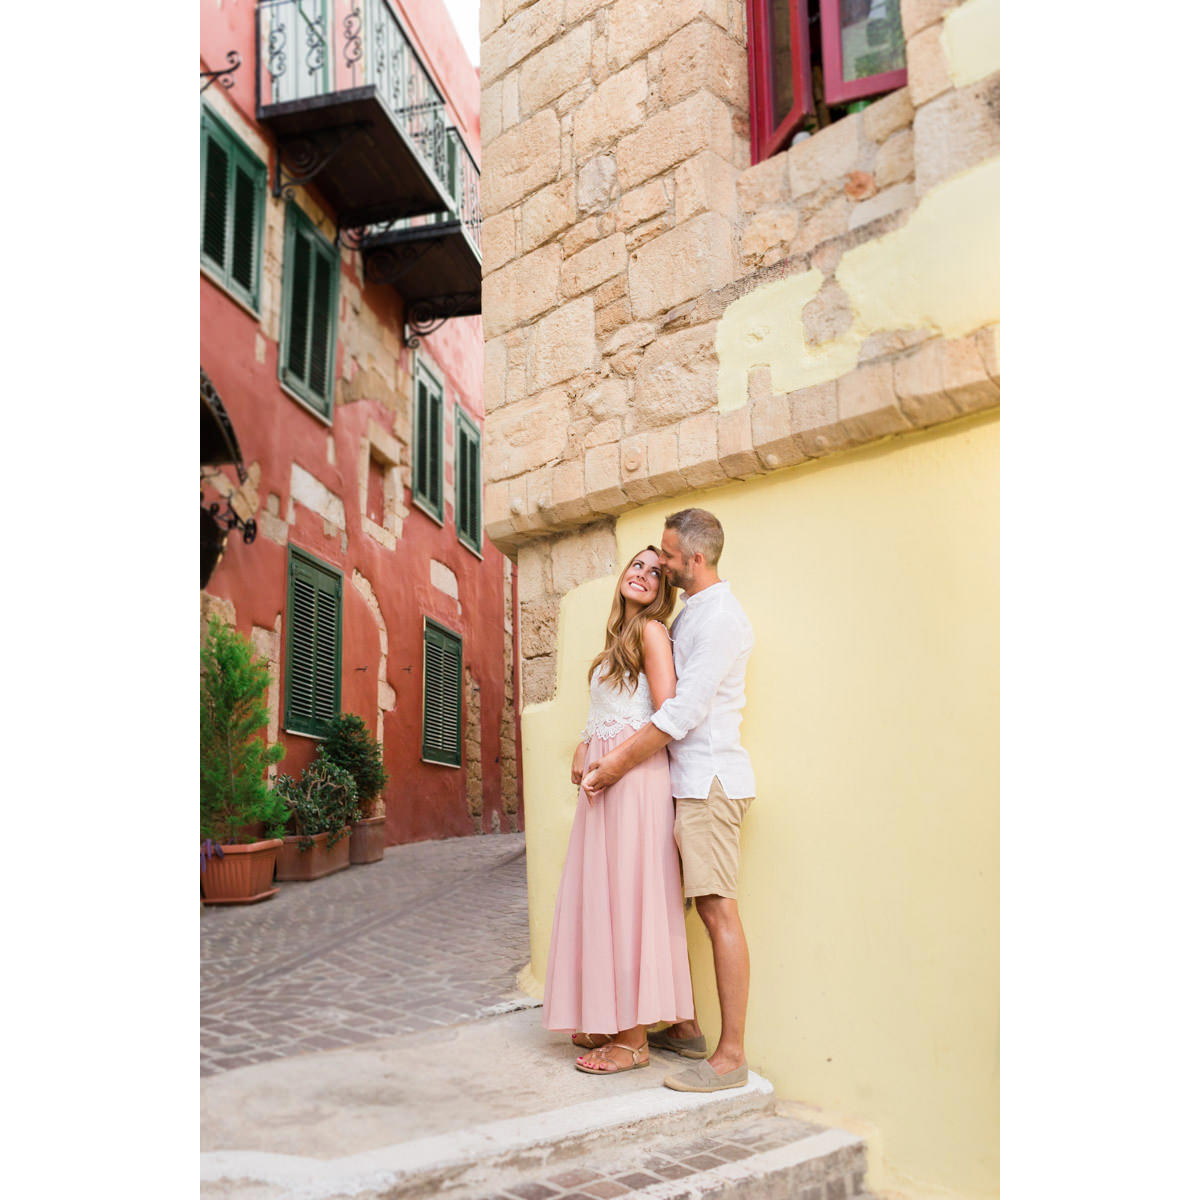 couple photo-shoot in old town of Chania